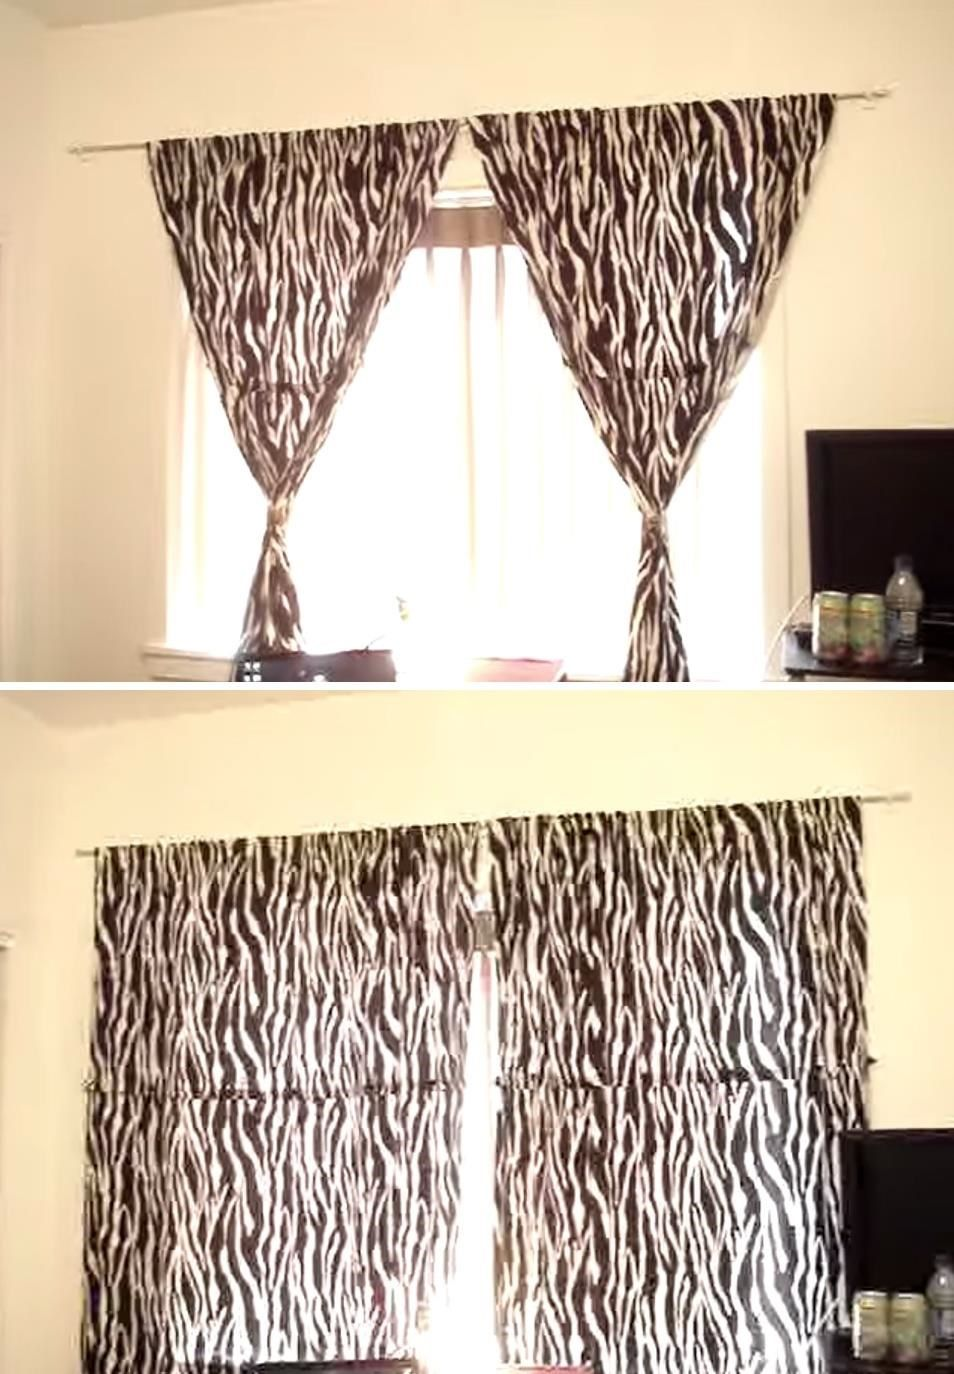 Hanging Curtains On Walls Without Windows How To Hang Curtains Without Making Holes In The Wall House